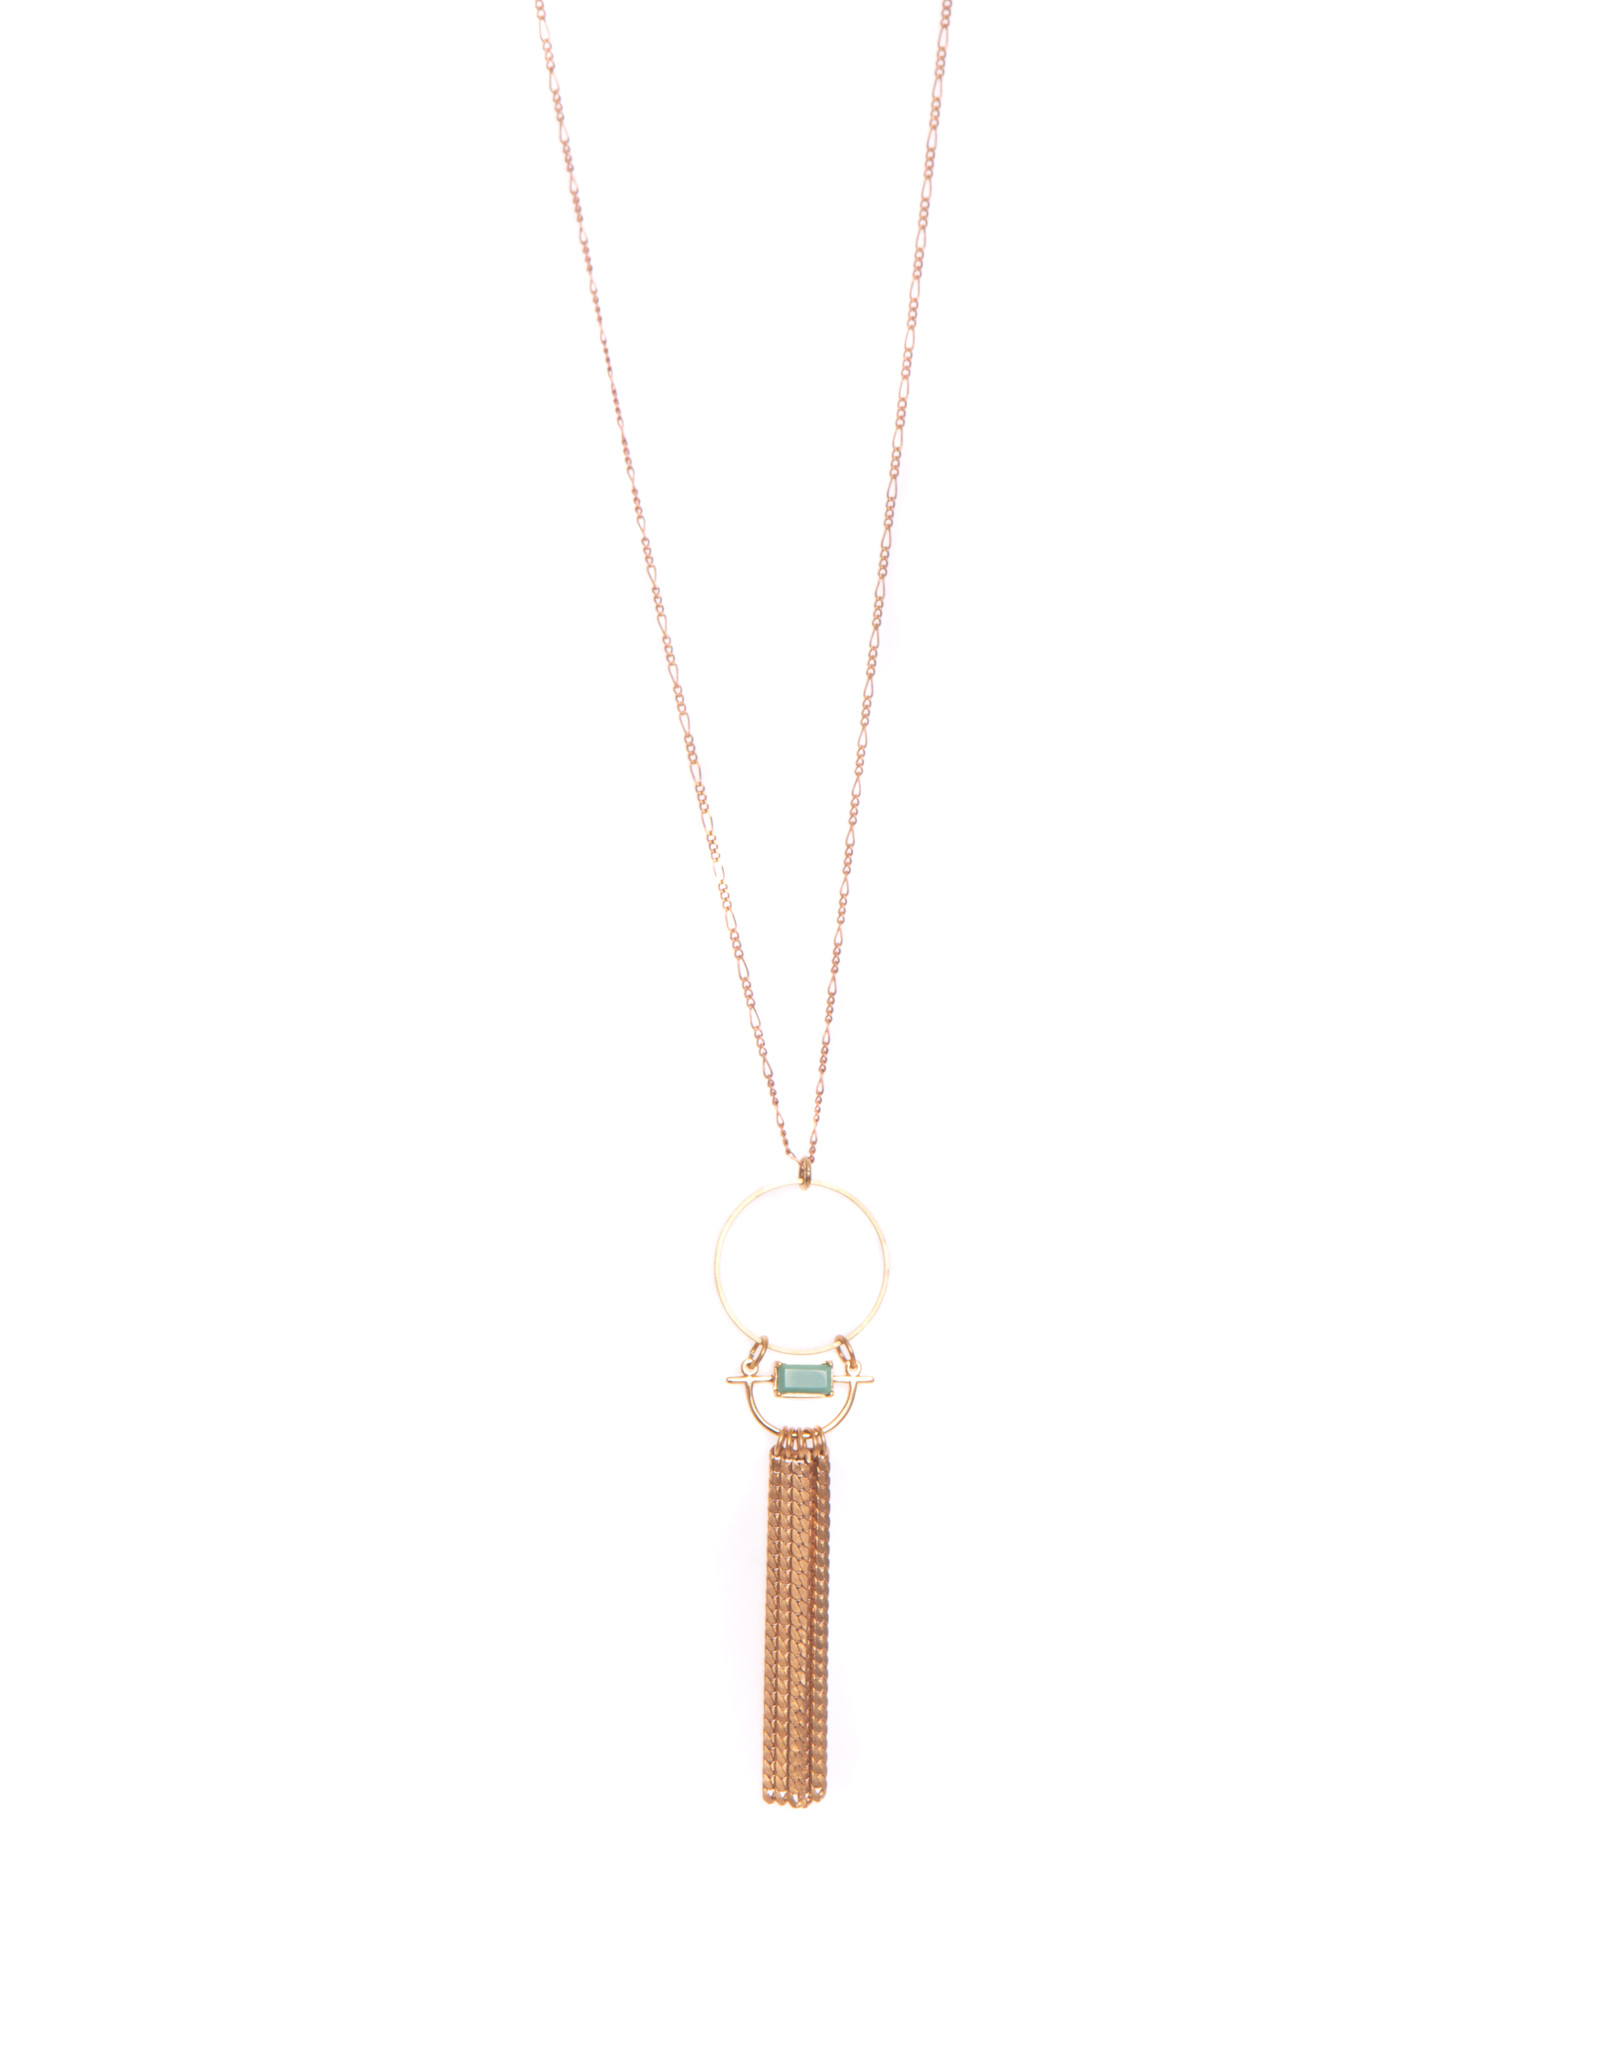 Hailey Gerrits Venus Necklace